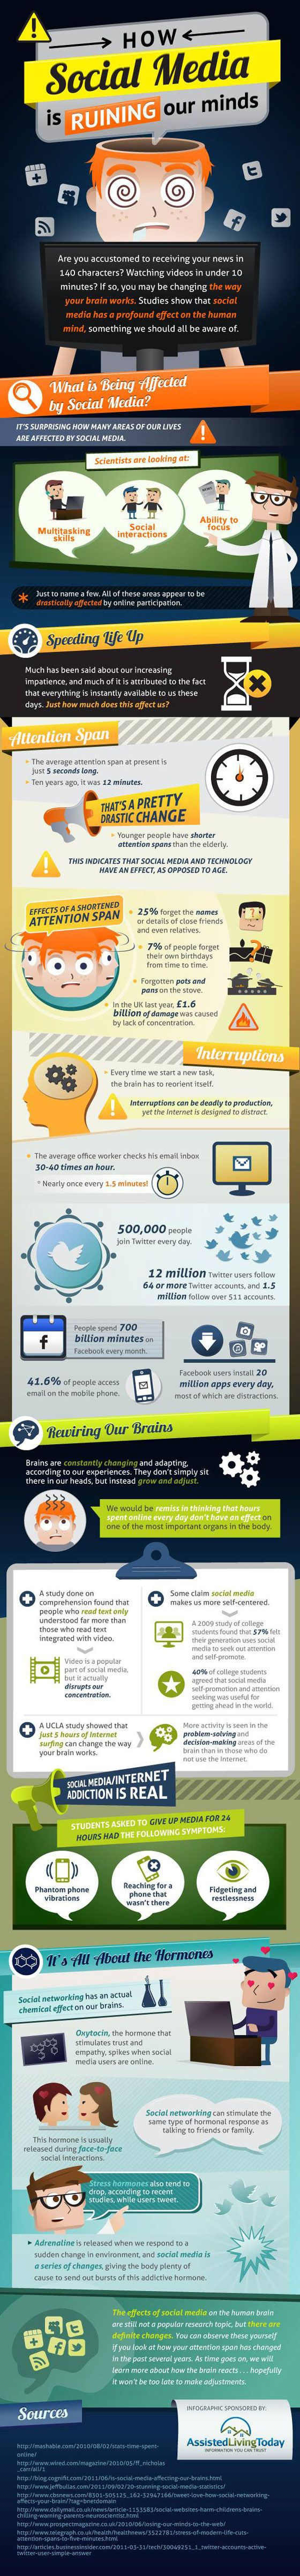 Infographic: How Social Media is Ruining Our Minds